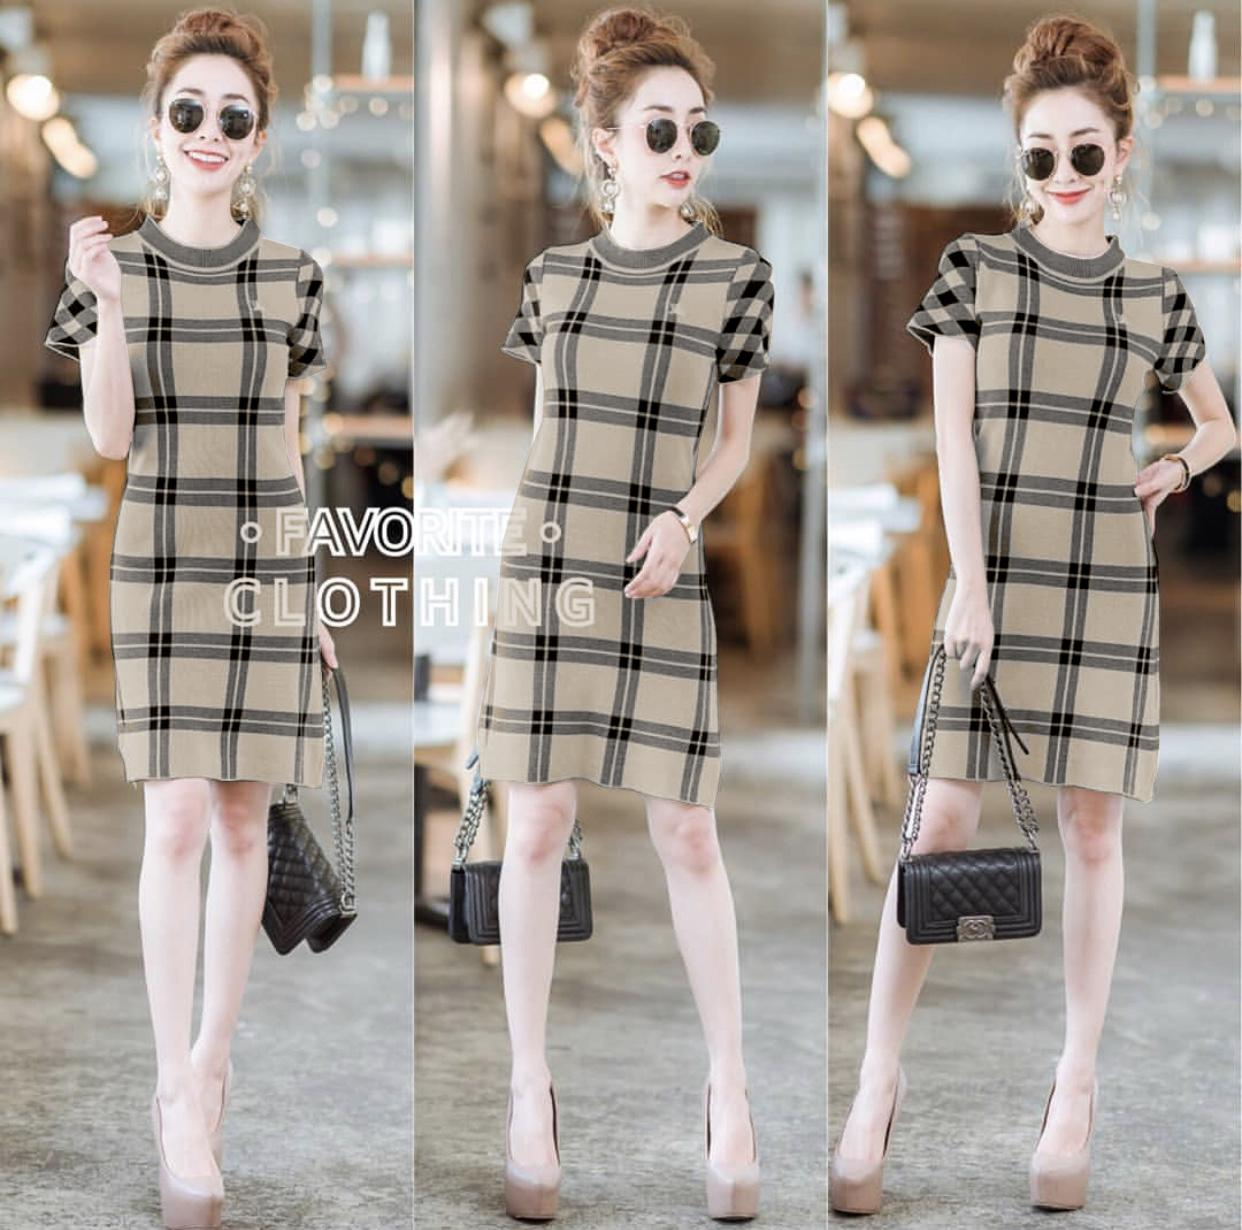 97eb037be8 Fashion Dresses for sale - Dress for Women online brands, prices ...